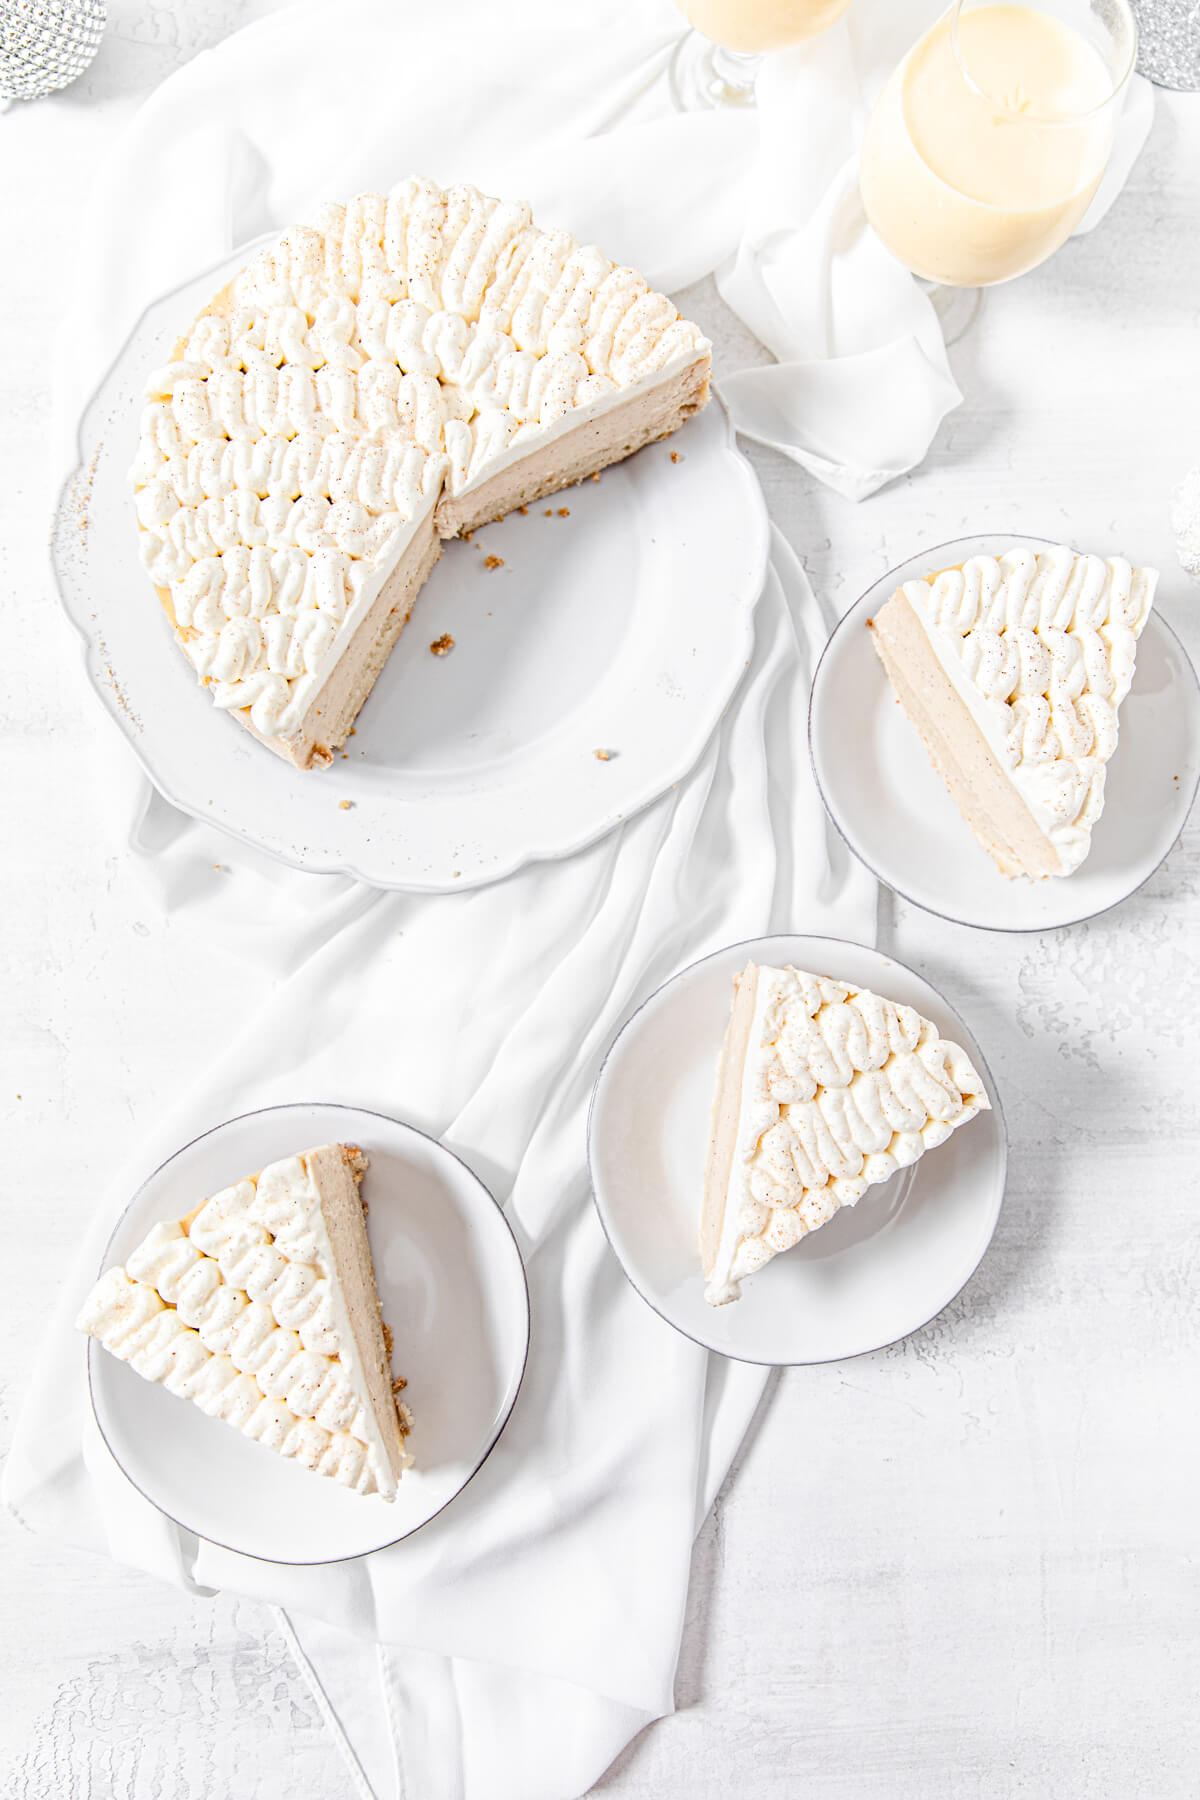 top view of cheesecake on a platter with three slices in three small white plates